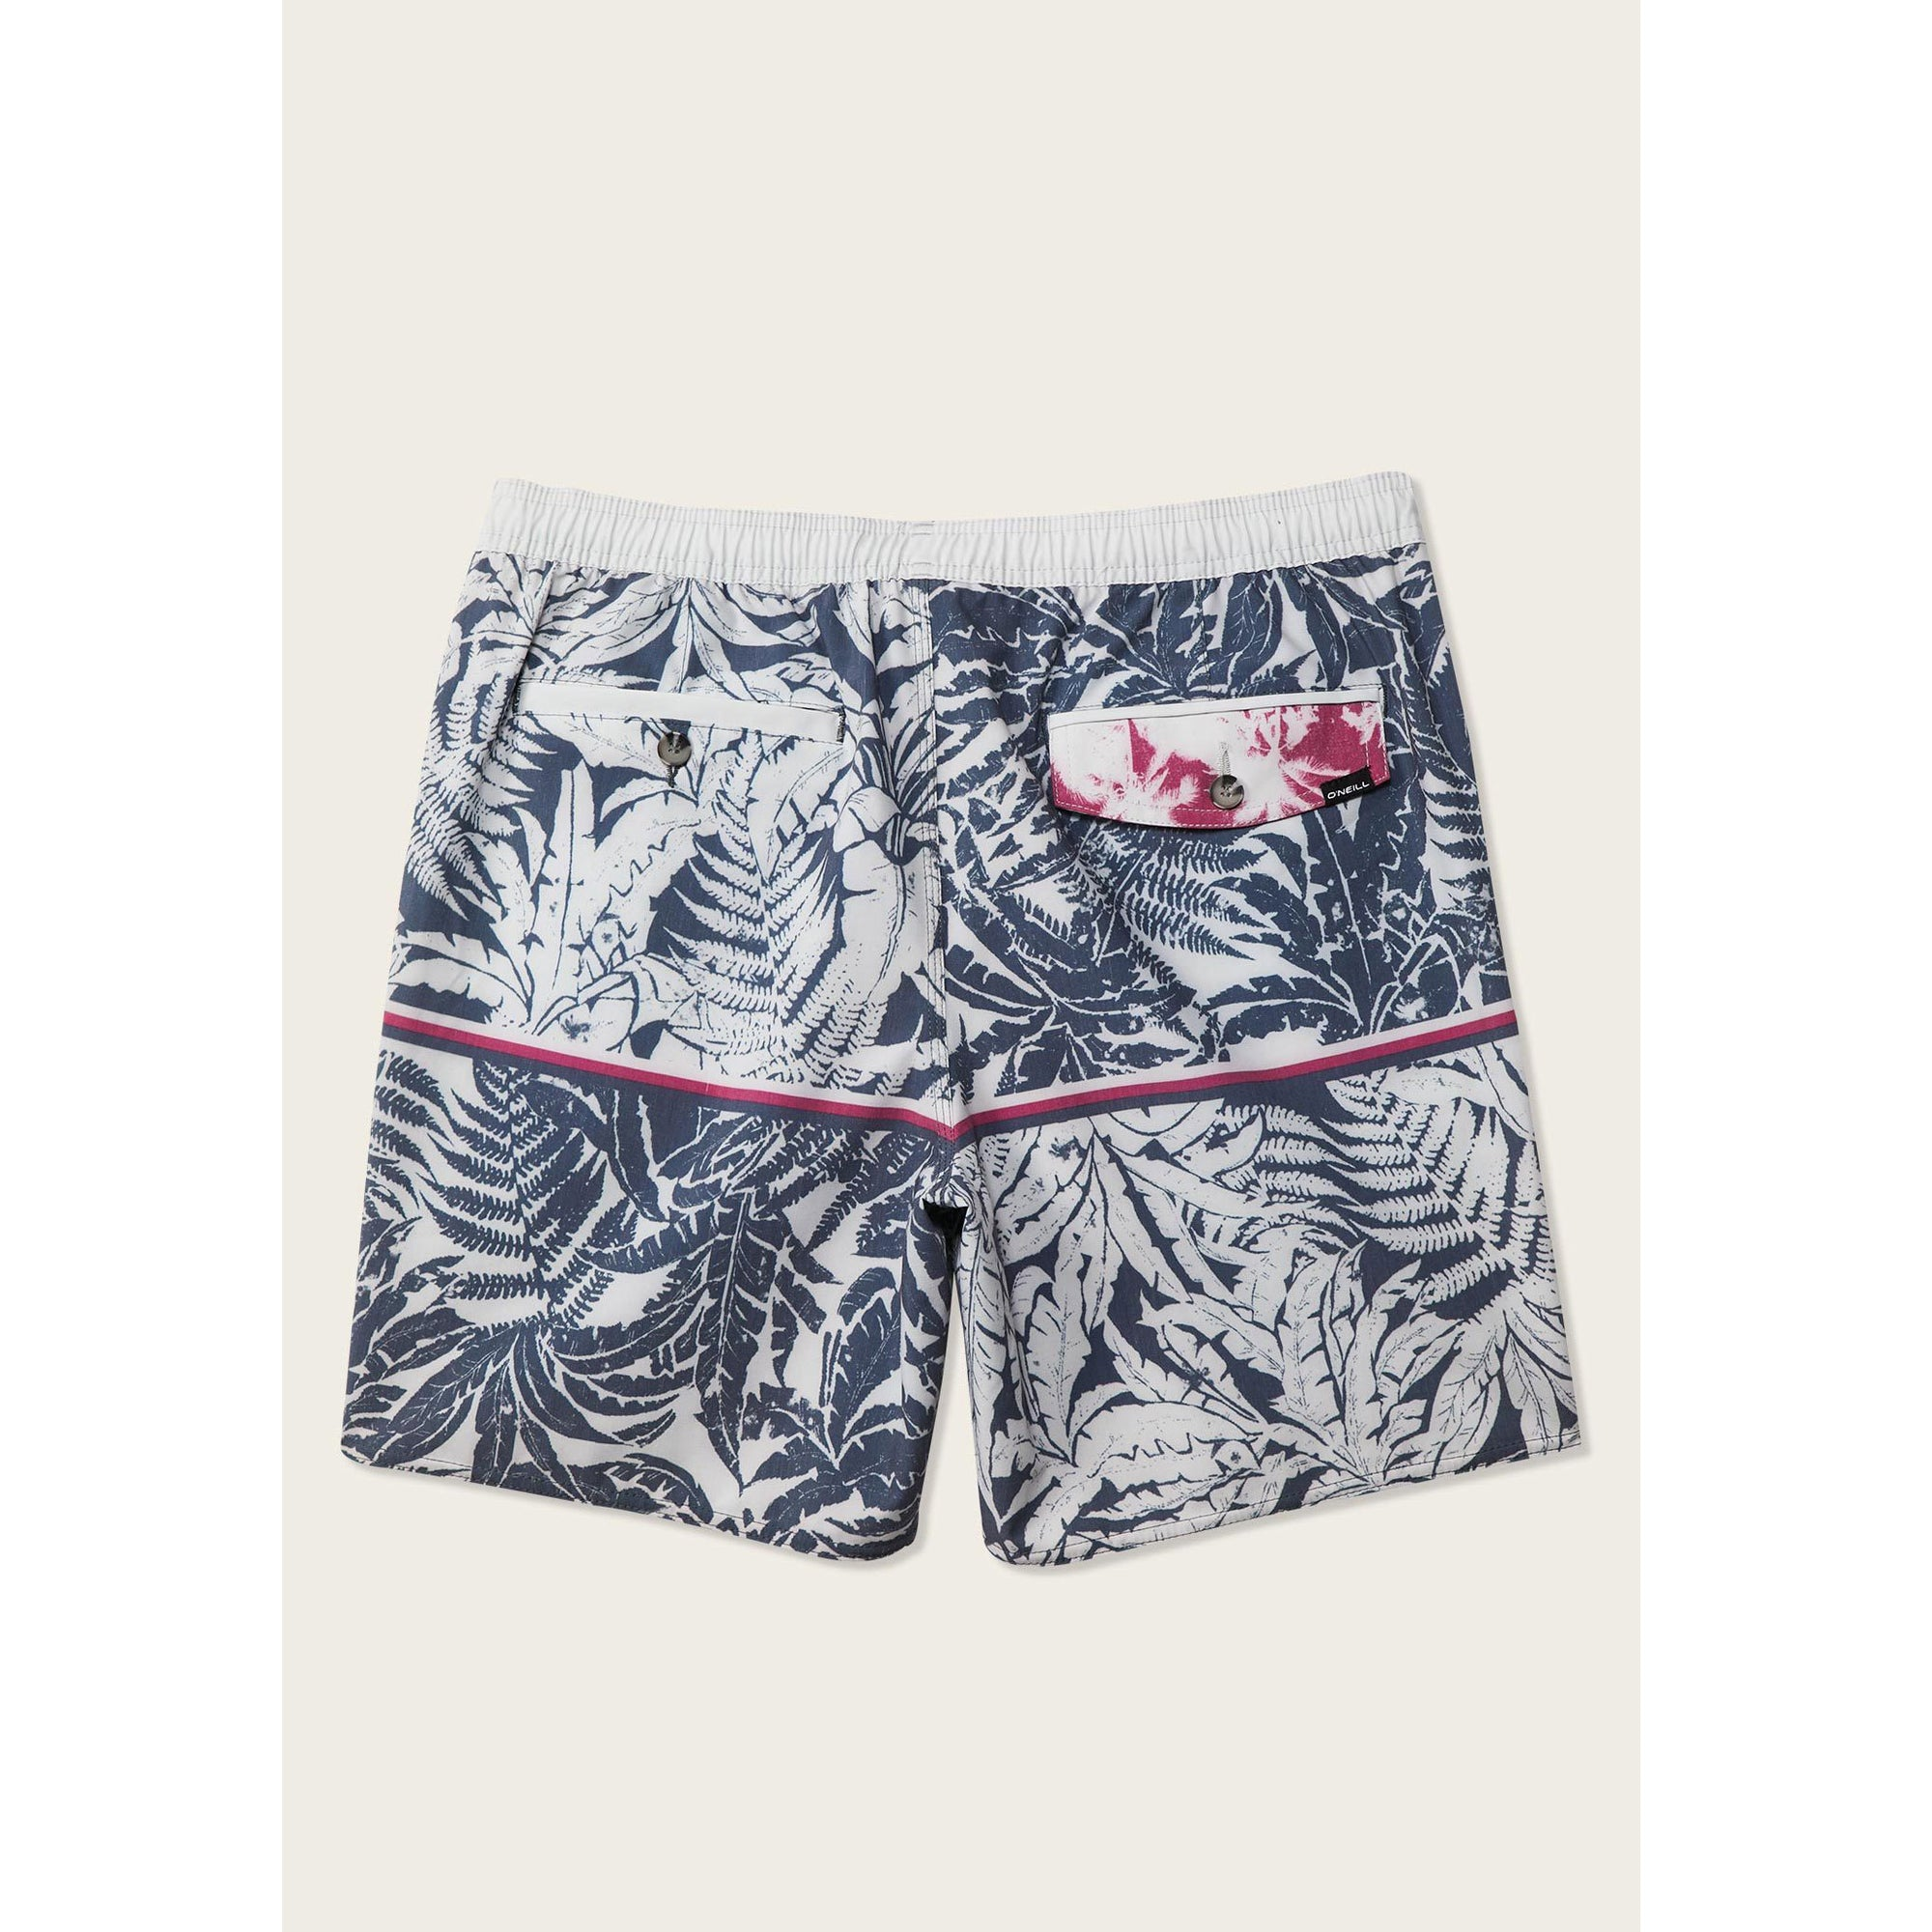 O'Neill Composition Volley Cruzer Men's Boardshorts - Slate